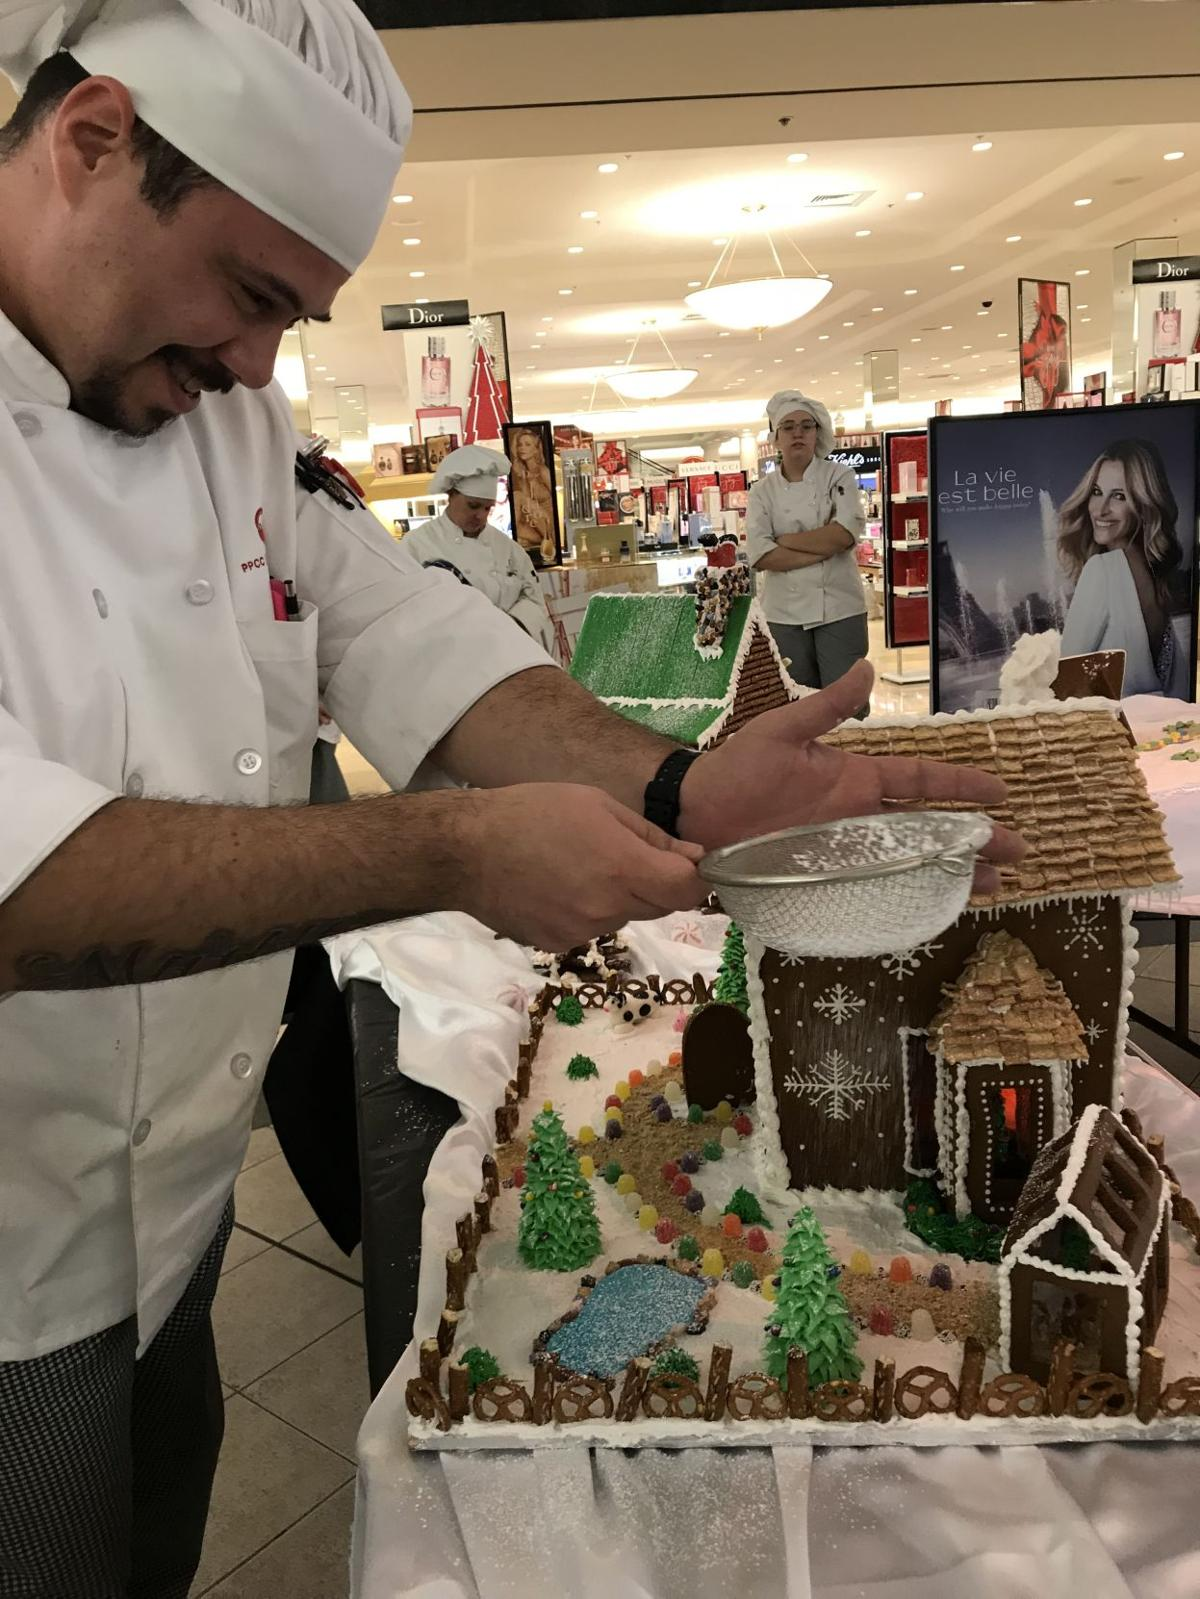 Eri Lugo and his gingerbread house